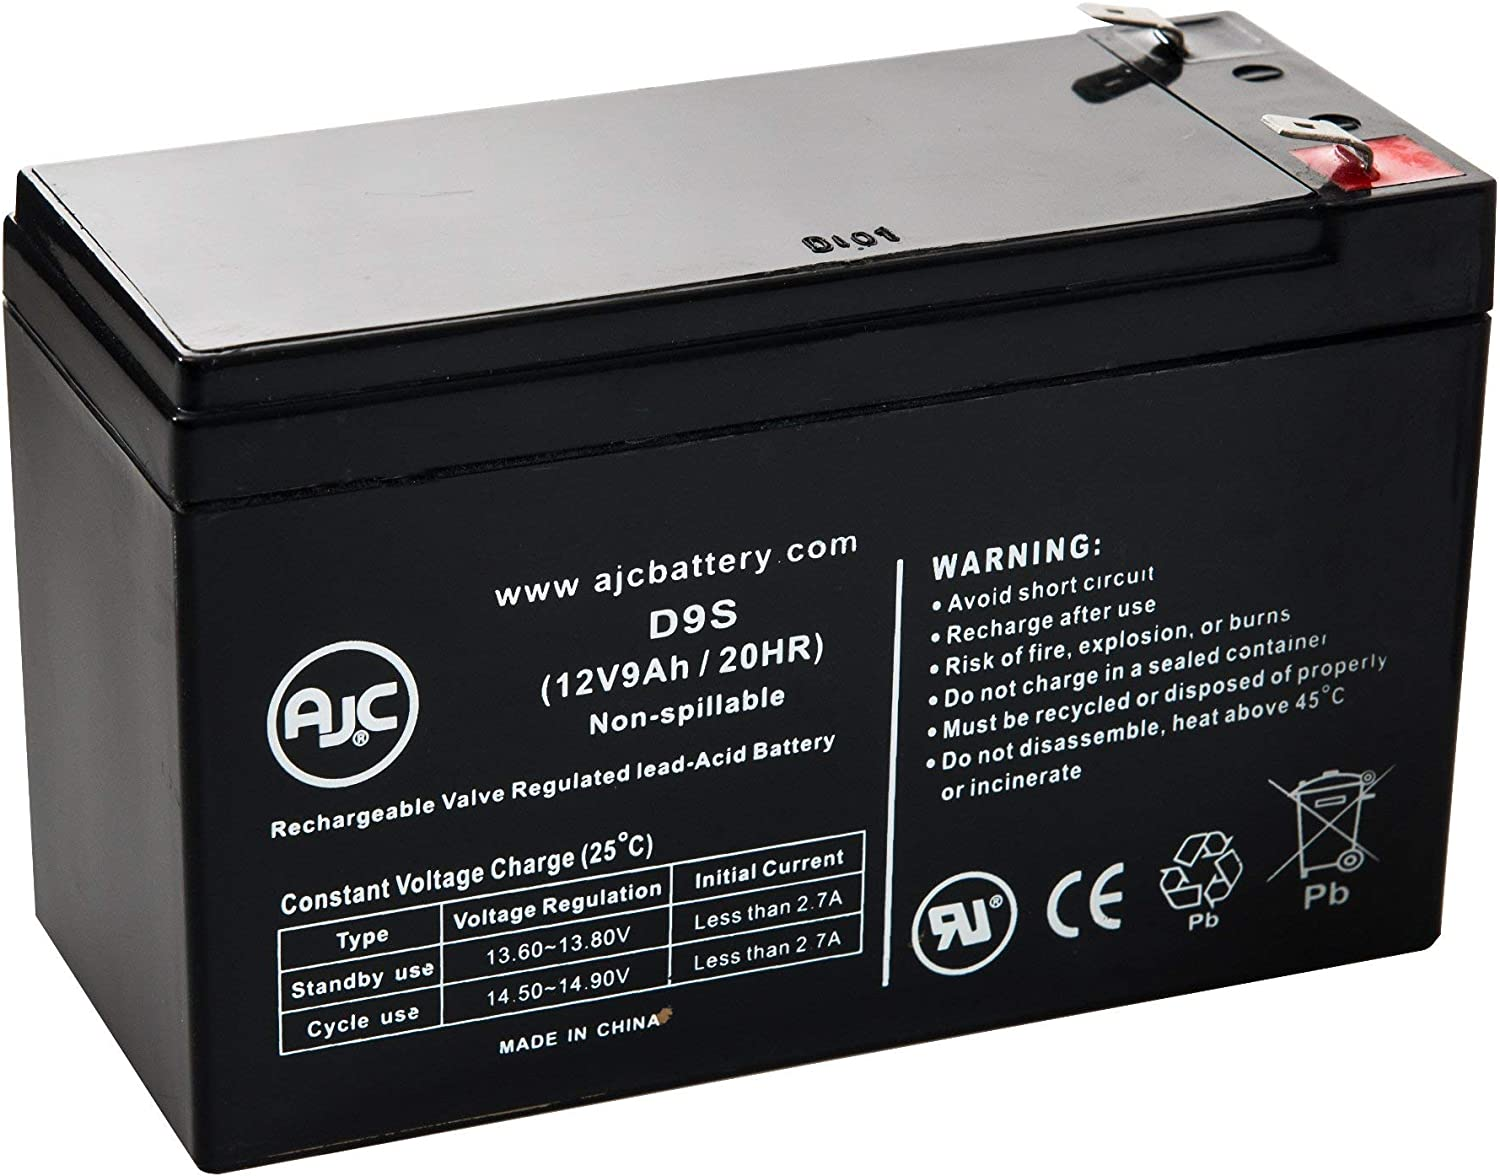 Geek Squad GS-875U 12V 9Ah UPS Battery This is an AJC Brand Replacement